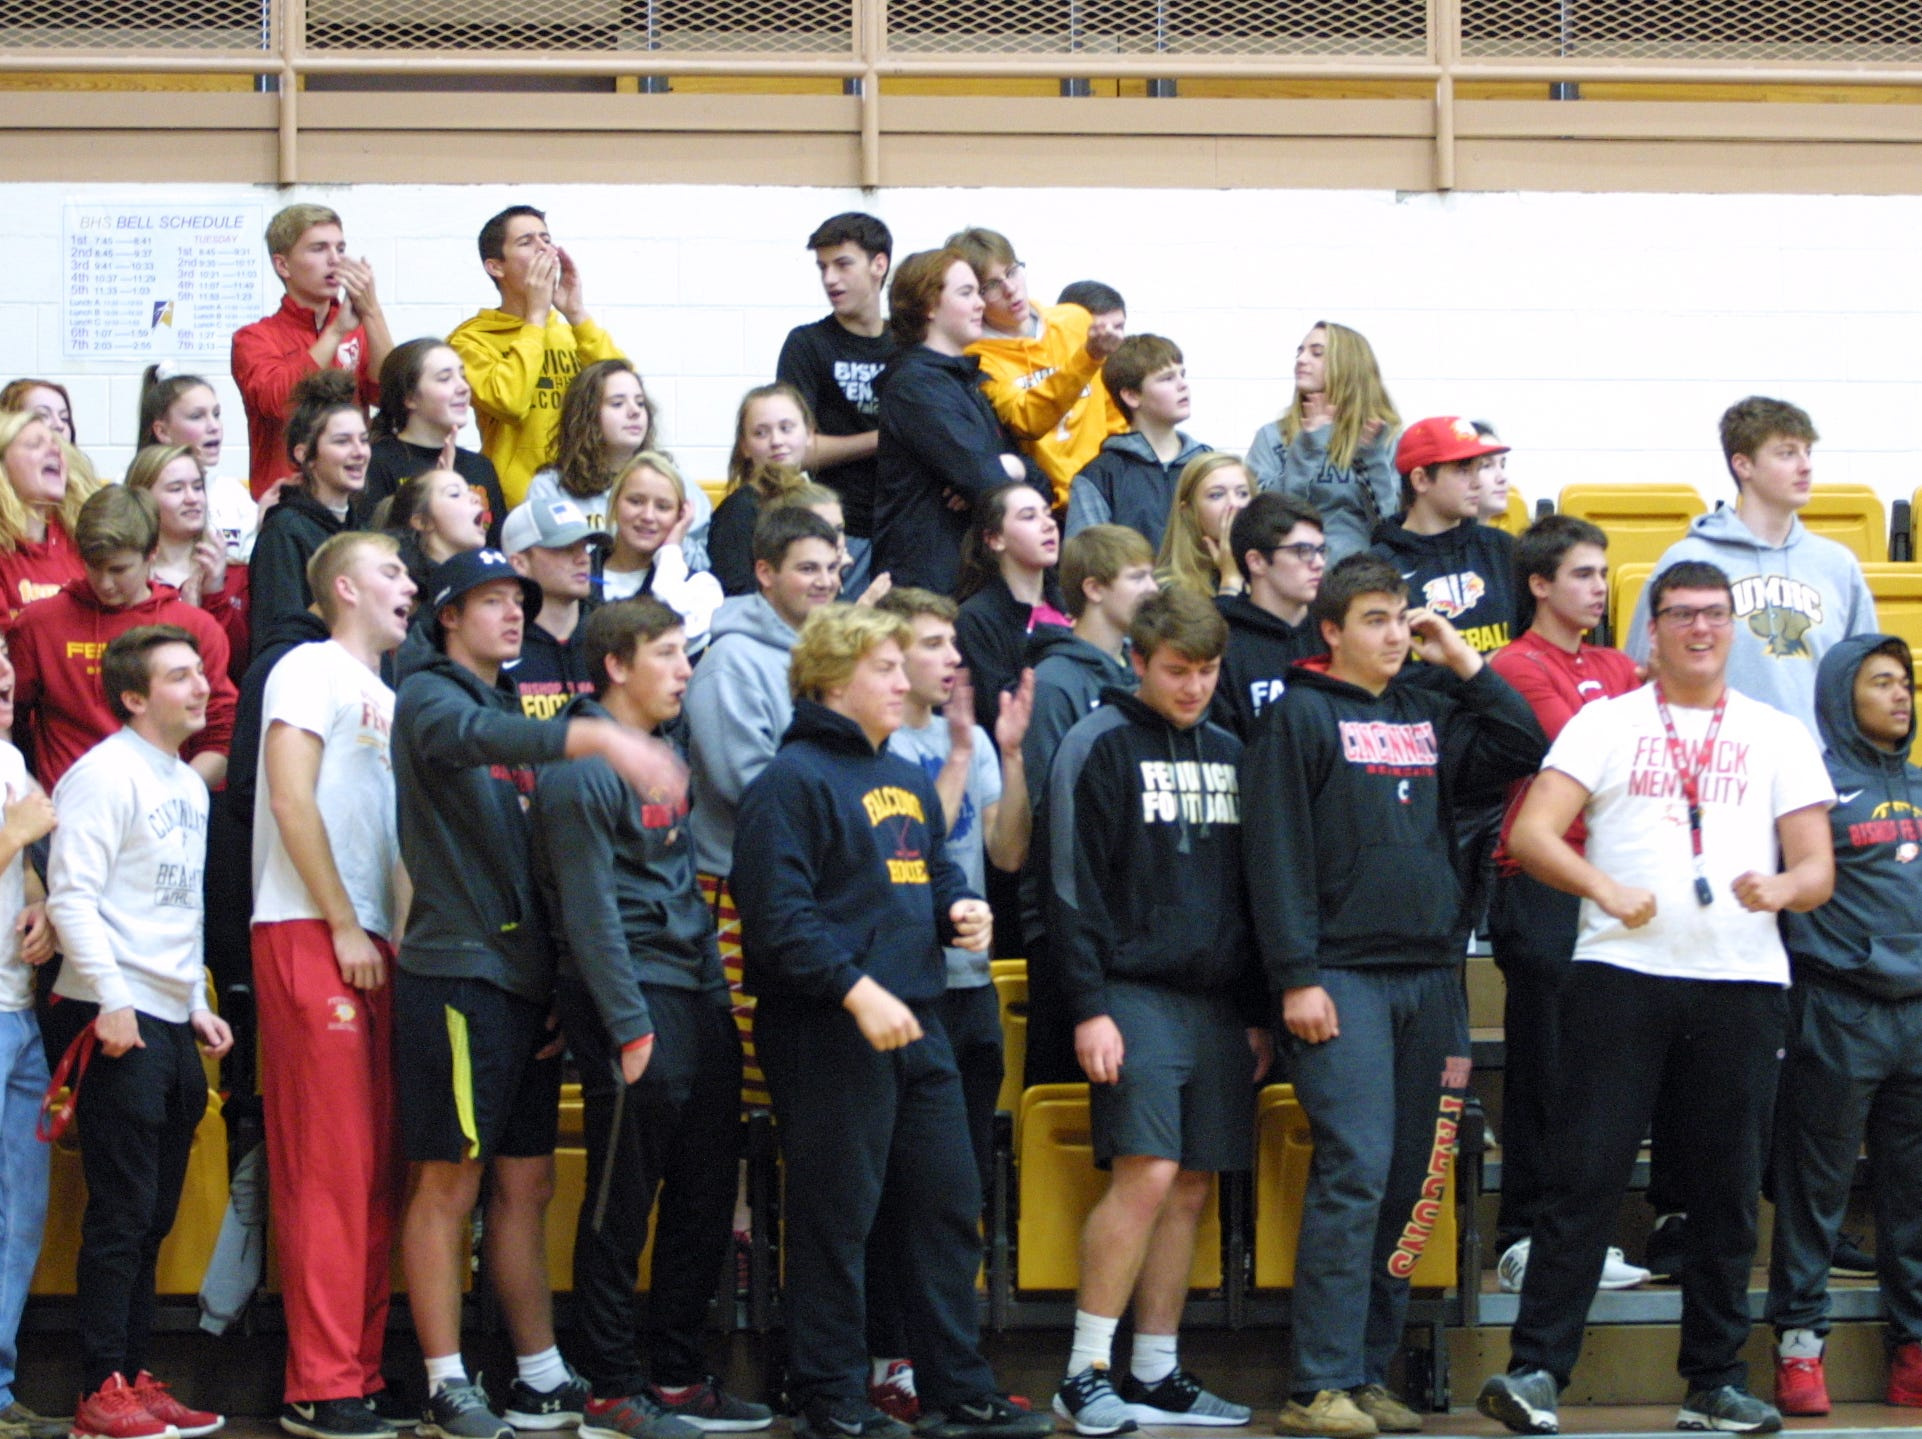 Bishop Fenwick fans cheer during their team's match against Roger Bacon in the regional final at Butler High School, Saturday, Nov. 3, 2018.